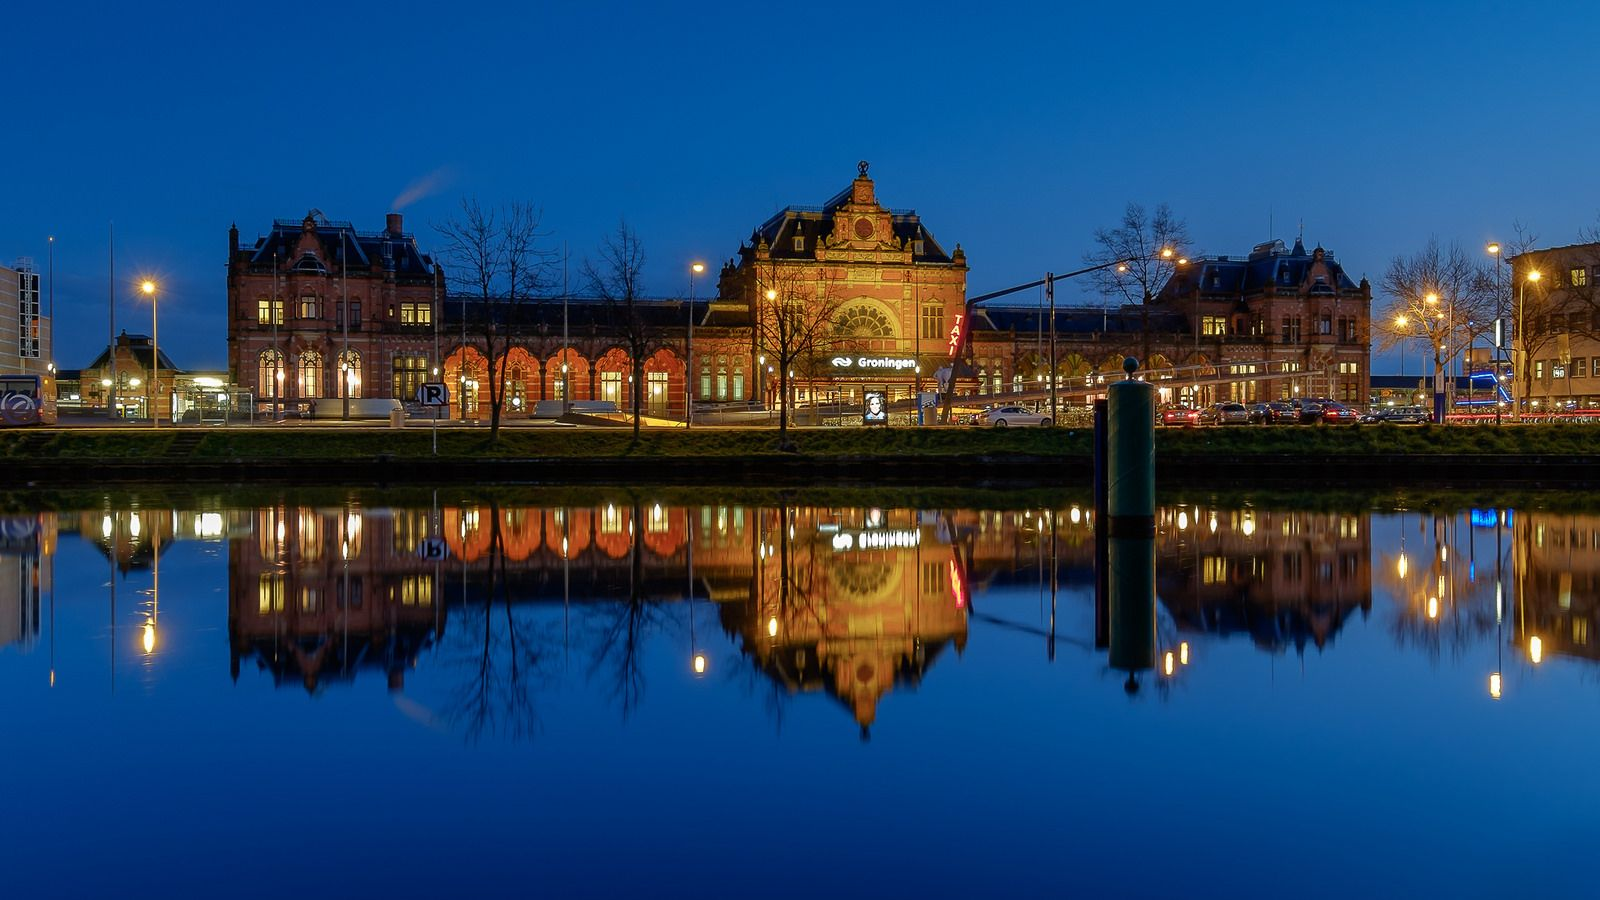 https://flic.kr/p/FxQoCp   Groningen Railway Station at blue hour   Groningen Railway Station at blue hour. I wanted to make a picture right in front of the building, but the buoy was in the way. So I moved a little bit to the left to make it less intruding.  Fuji X-E2 + Fujinon 10-24mm at 22mm, f/11, 8 sec. exposure at ISO 200, Lee ND 0.6 Hard grade filter.  Thanks to everyone who takes the time to comment and/or fave.   © Koos de Wit All rights reserved. Please don't use this image…